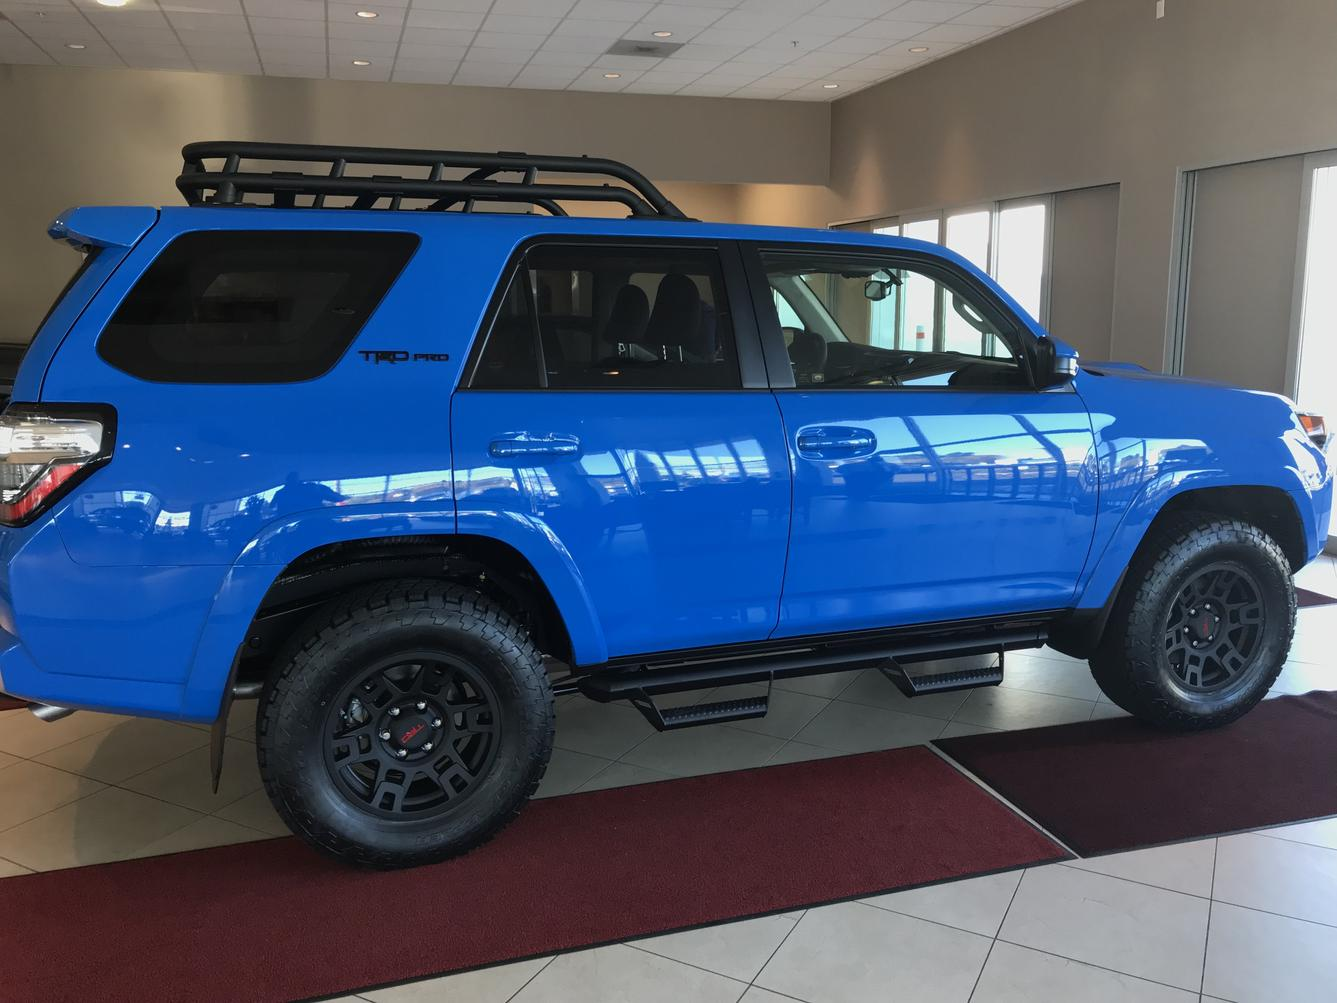 2019 Trd Pro 4runner Pic Request Page 7 Toyota 4runner Forum Largest 4runner Forum